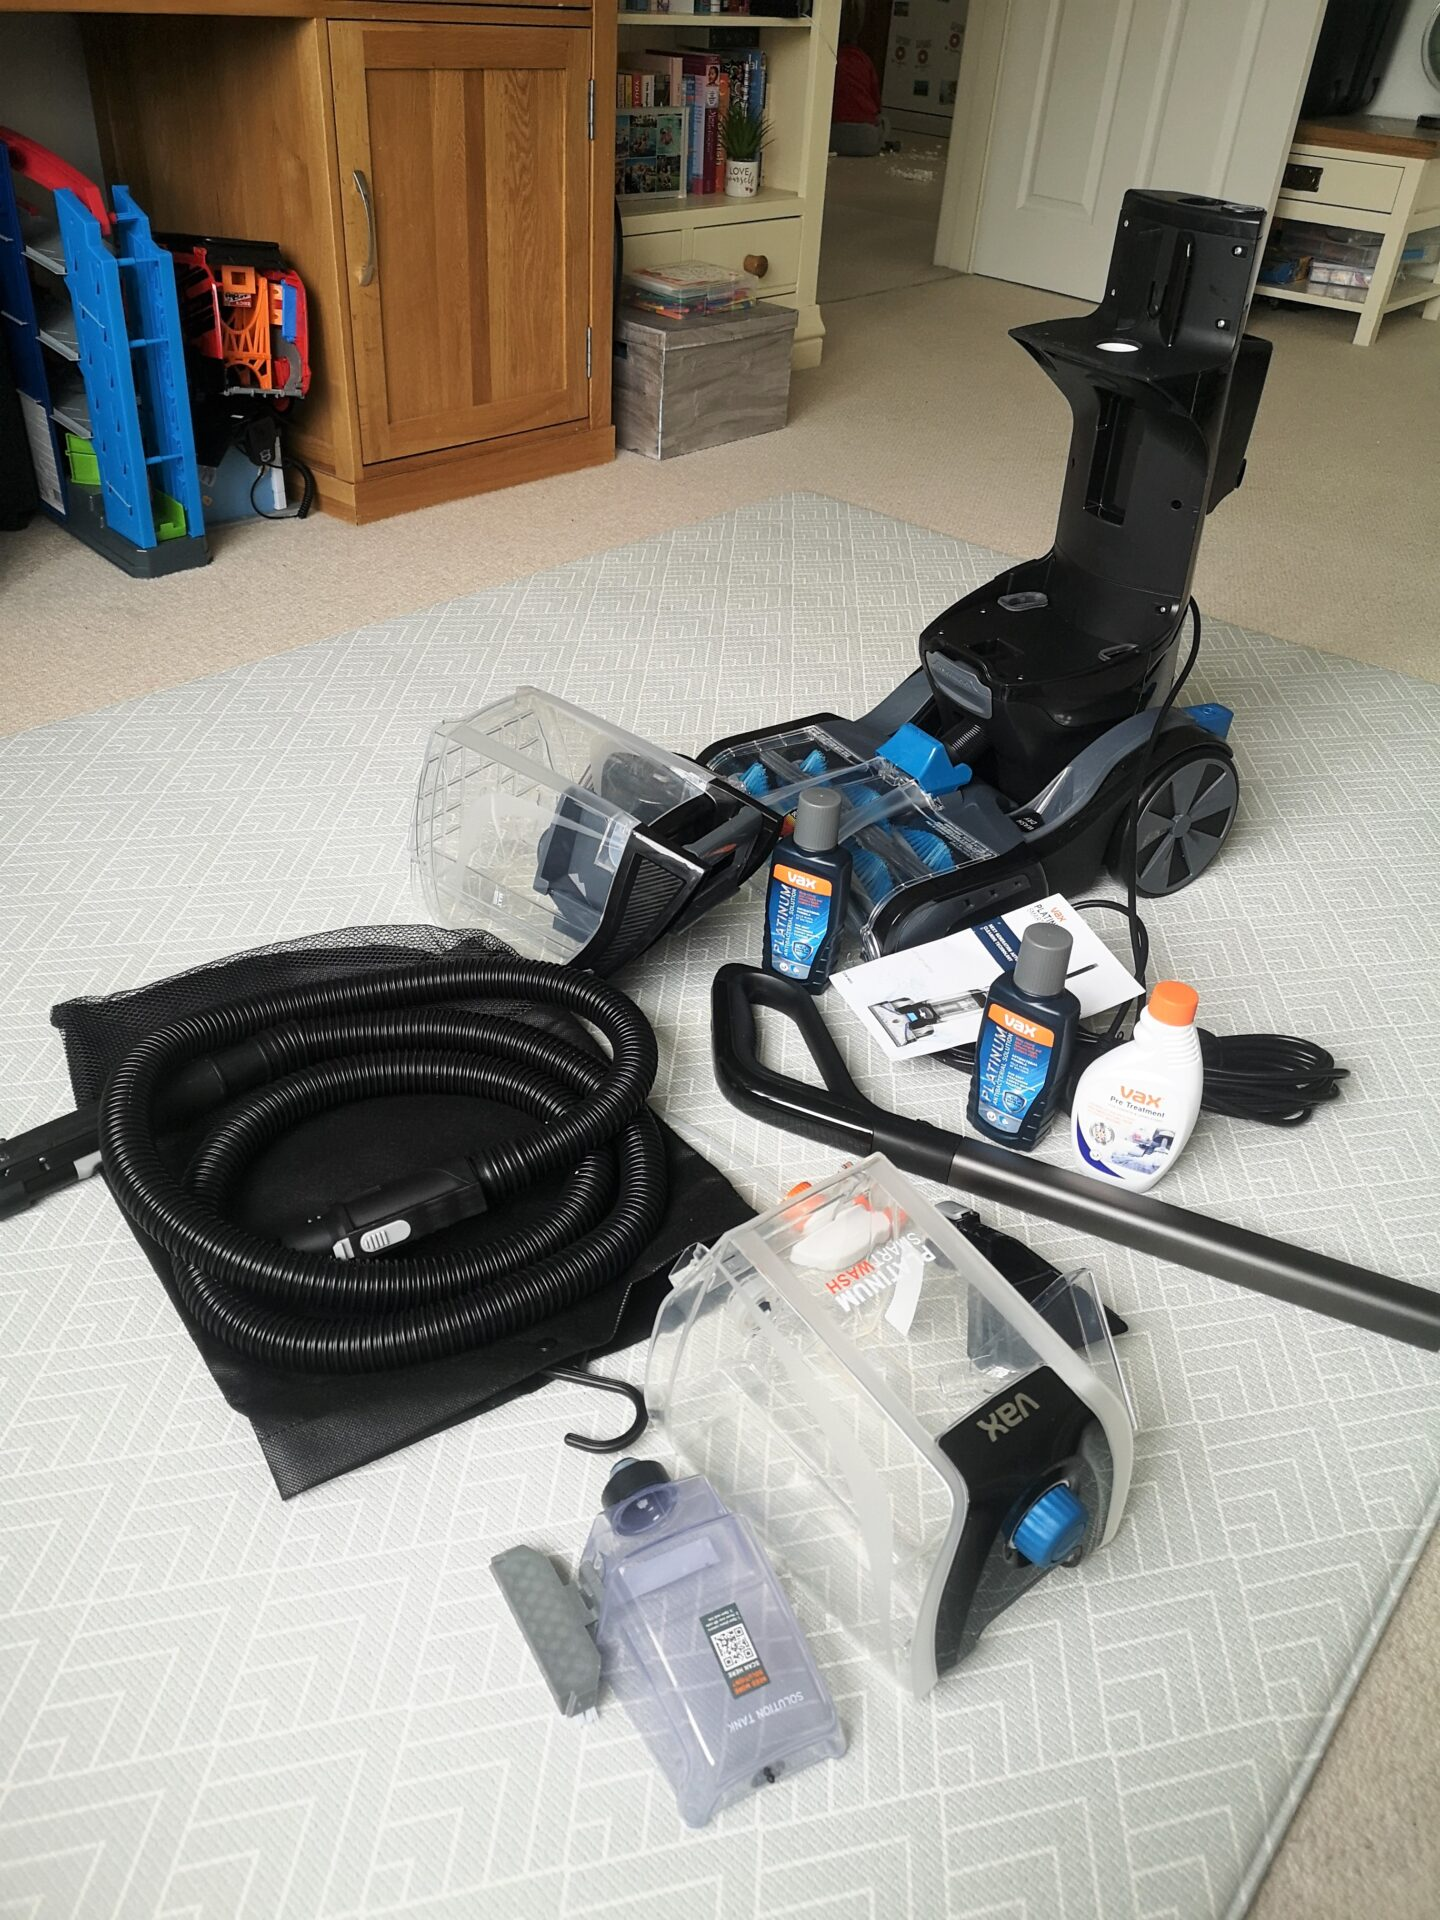 Vax Platinum SmartWash Carpet Cleaner Review, Vax, Carpet Cleaner, Home Appliances, Review, Motion Sense Technology, Carpet Cleaning, Home & Garden, The Frenchie Mummy, Vax Platinum SmartWash, Carpet Cleaner